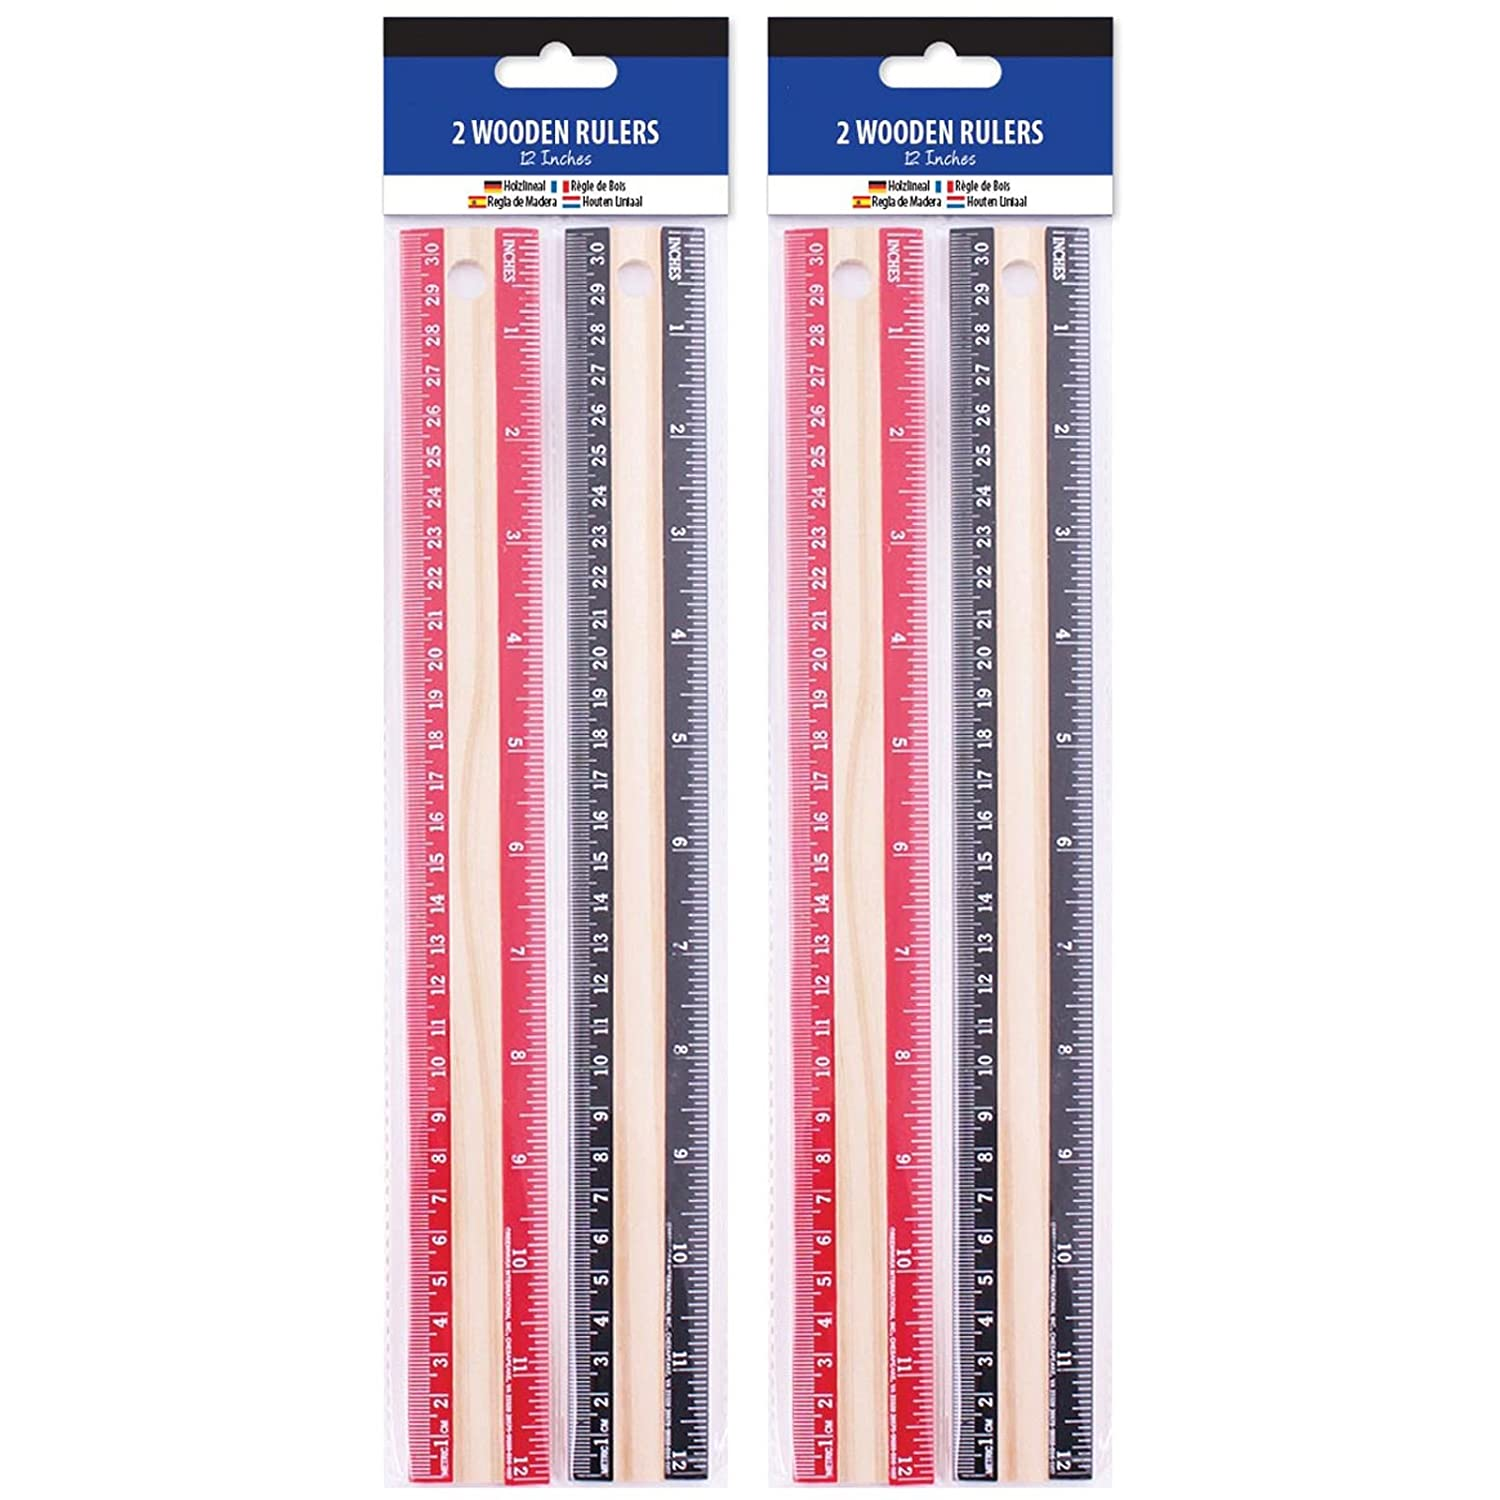 2 Pack 2 Pack Wooden Rulers 30cm 12 Long Classic Set Metric Wood Measure School Kids Office Stationary Crafts